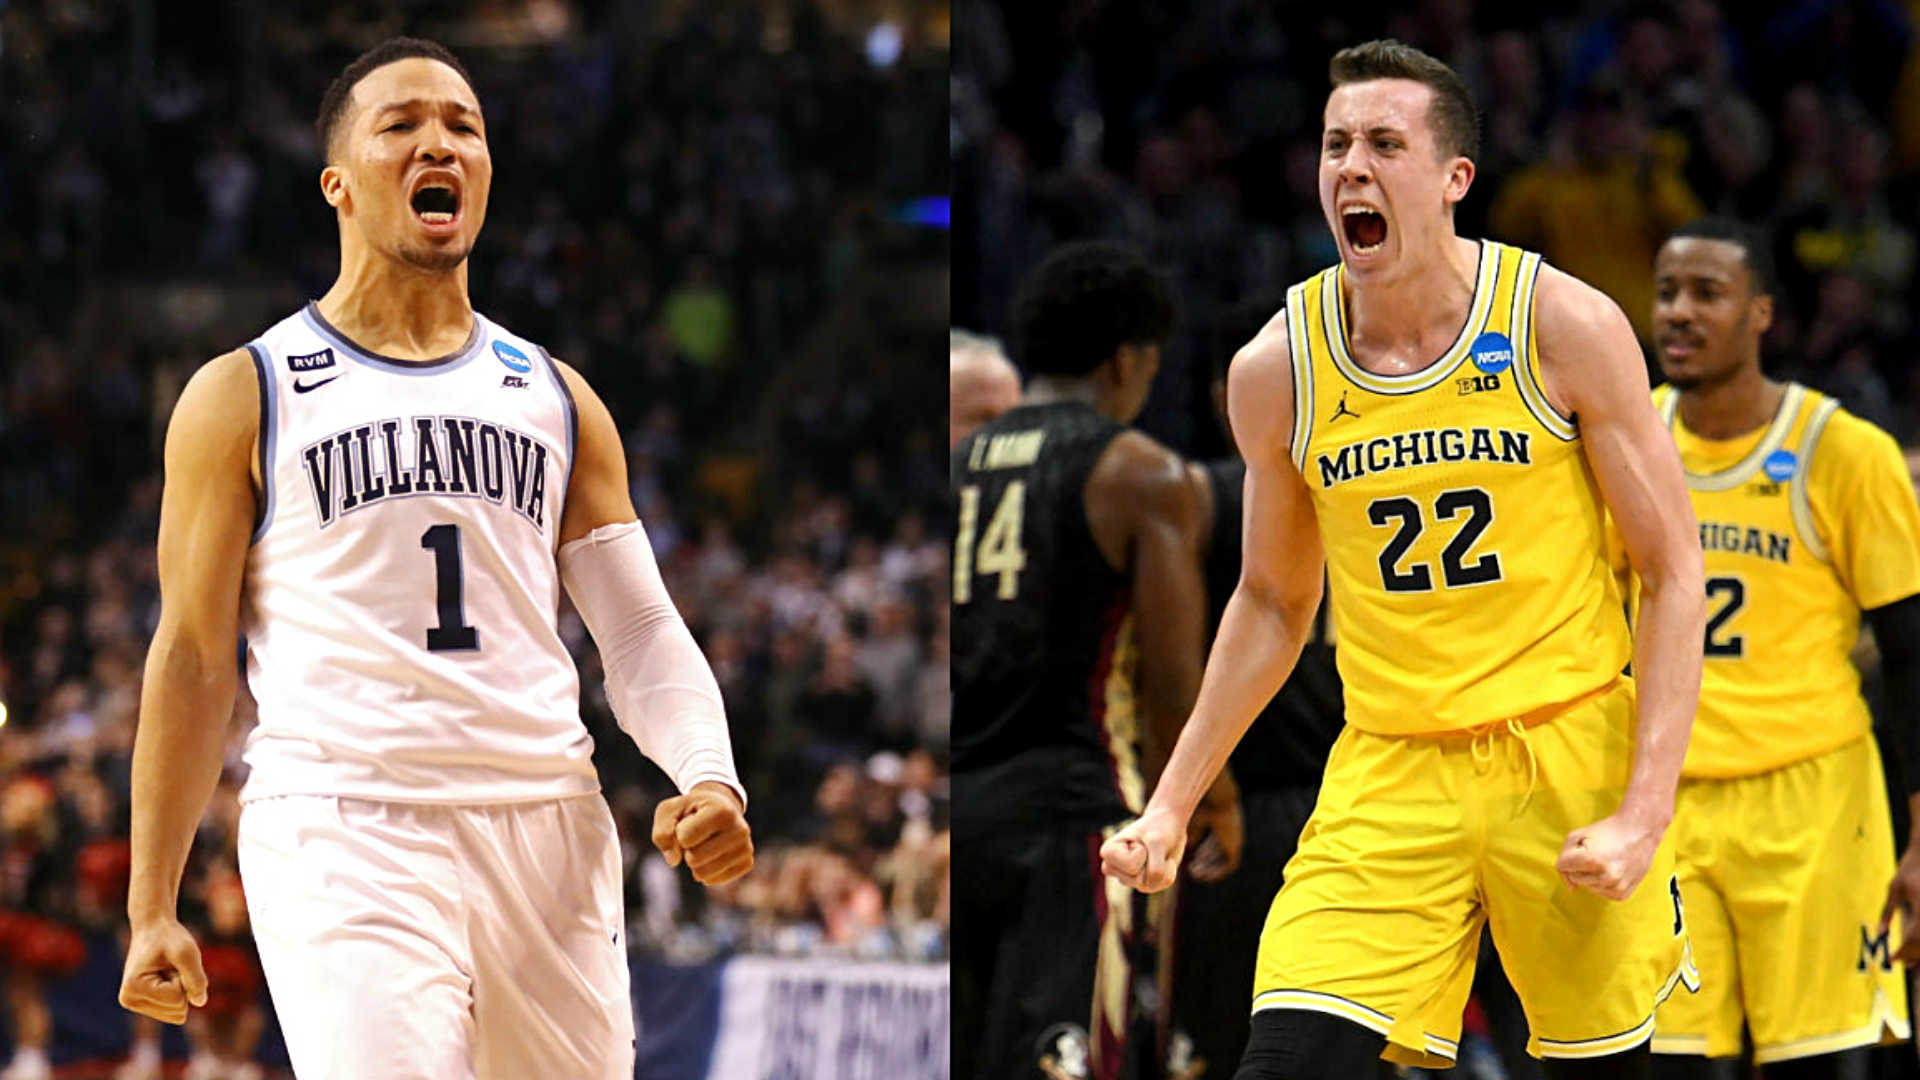 Villanova-Michigan drew National Championship Game's lowest rating ever, per report